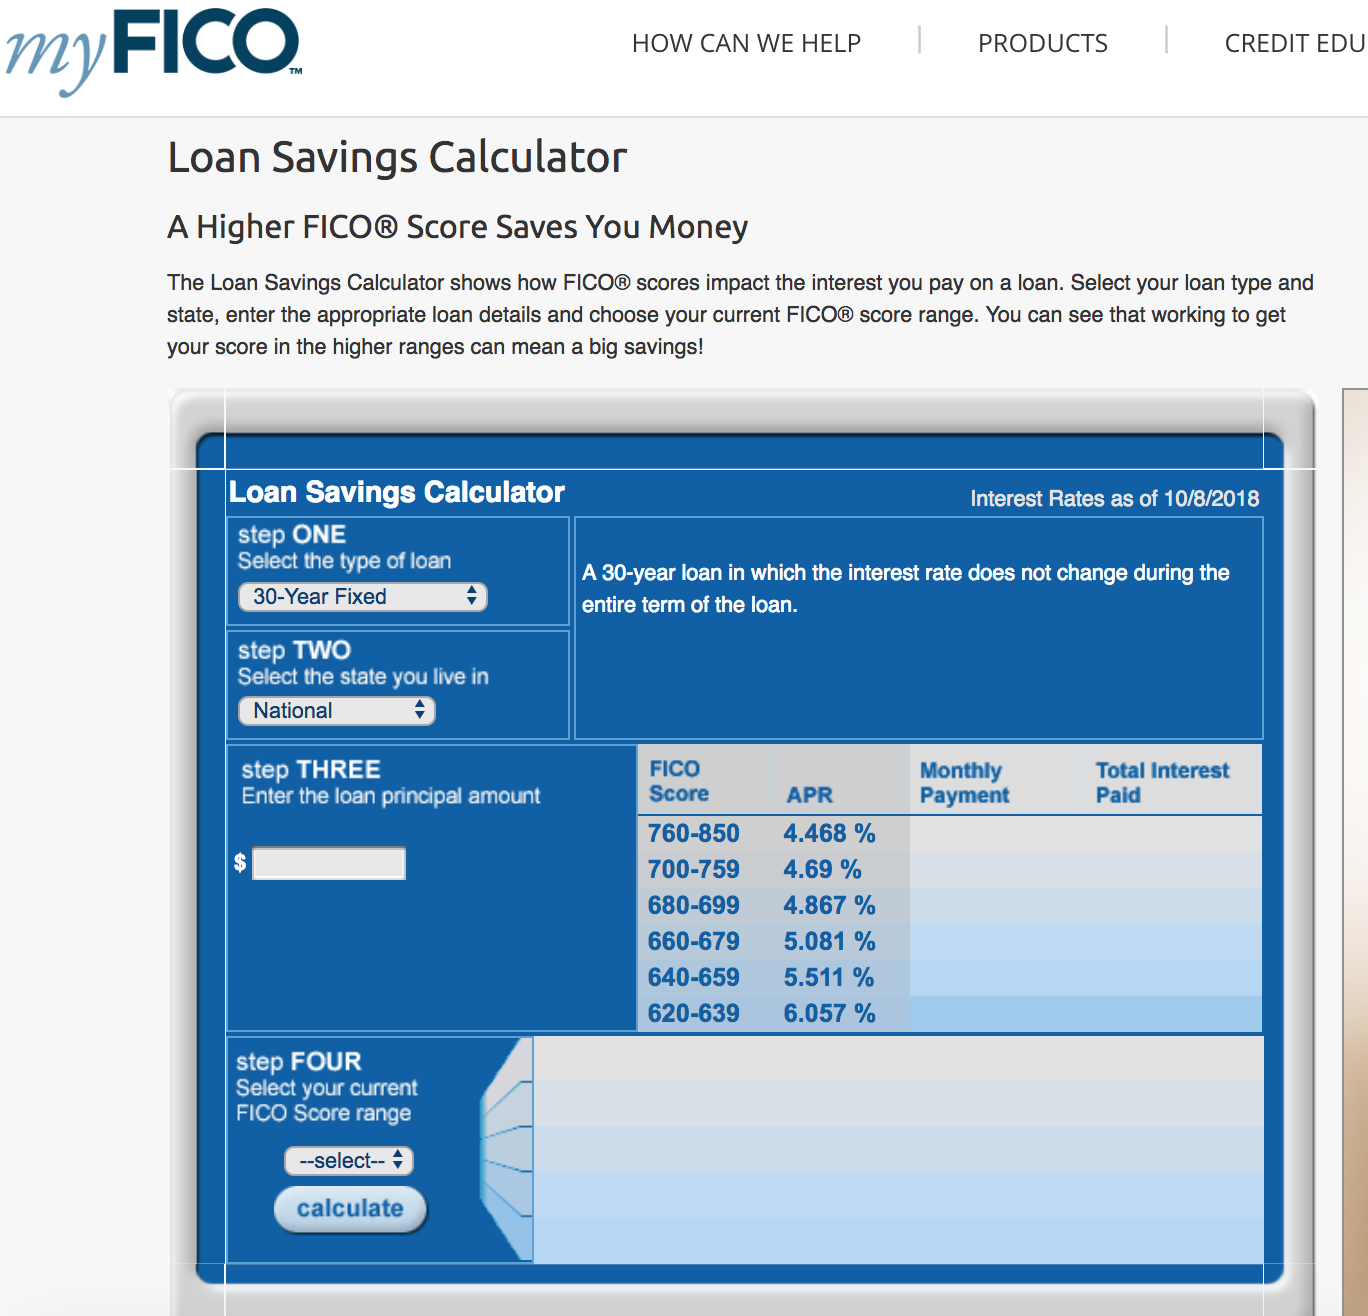 Higher Fico Scores Save You Money On Loans By Qualifying You For Lower Interest Rates Which Can Save You Thousands O Savings Calculator Credit Education Loan